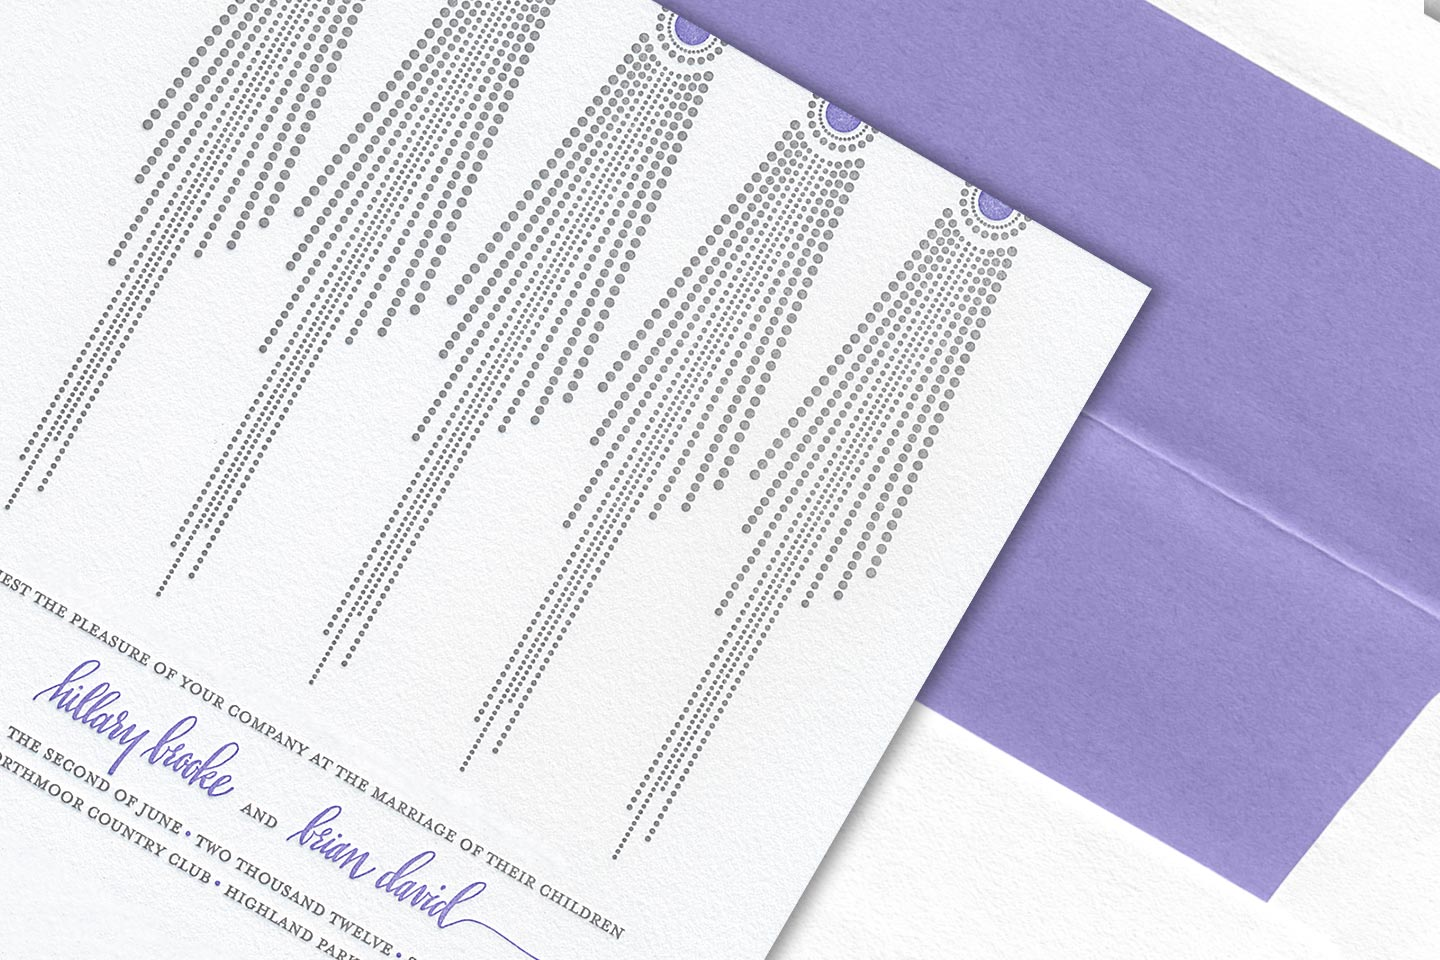 a beautiful sample wedding invitation for hillary brooke and brian david, overlayed on top of its envelope featuring a beautiful lavender liner, captured by 4d, inc